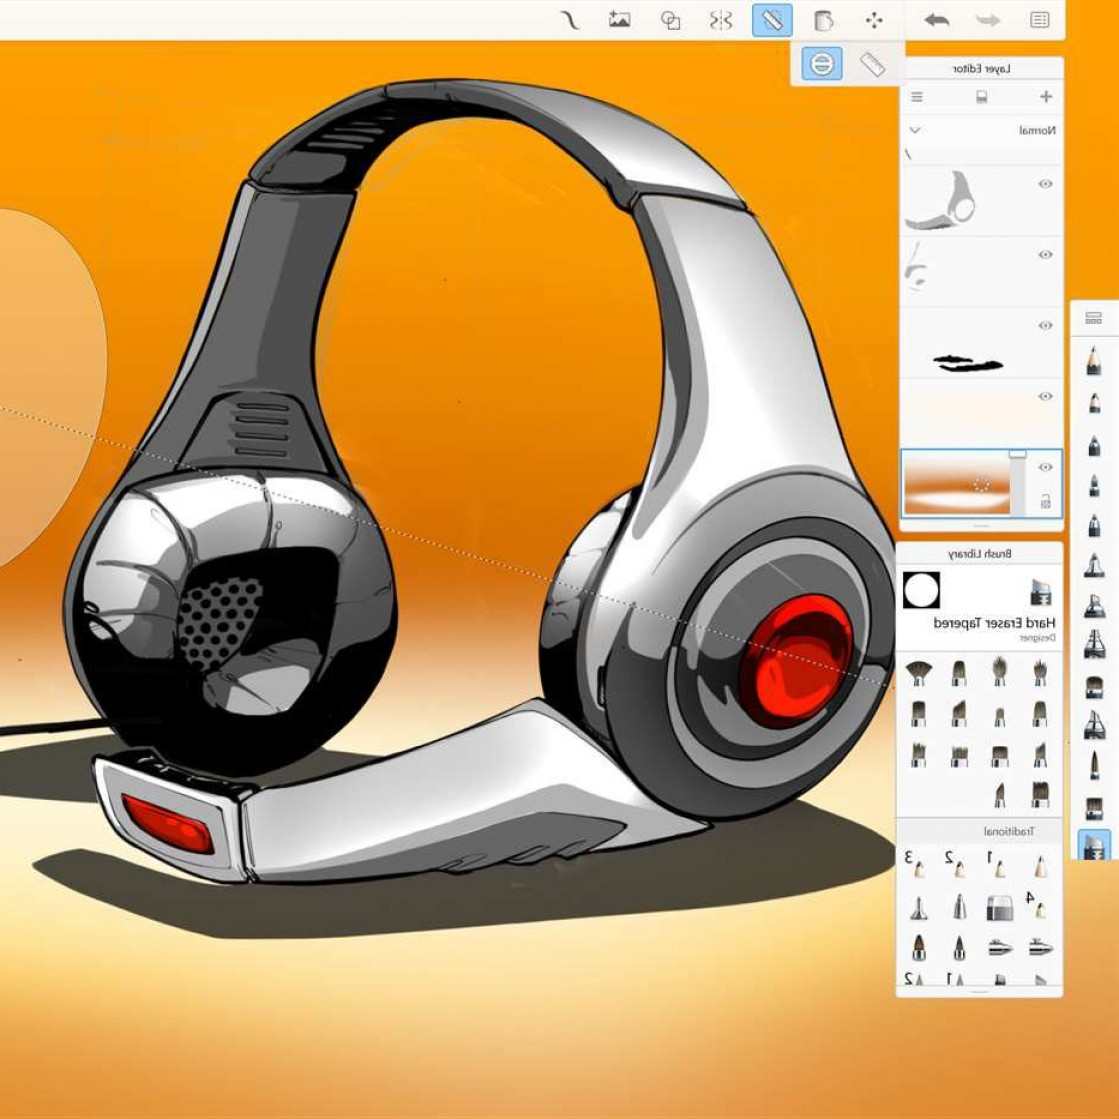 Vector Drawing App Windows 8: Essential Apps If You Own Surface Pen